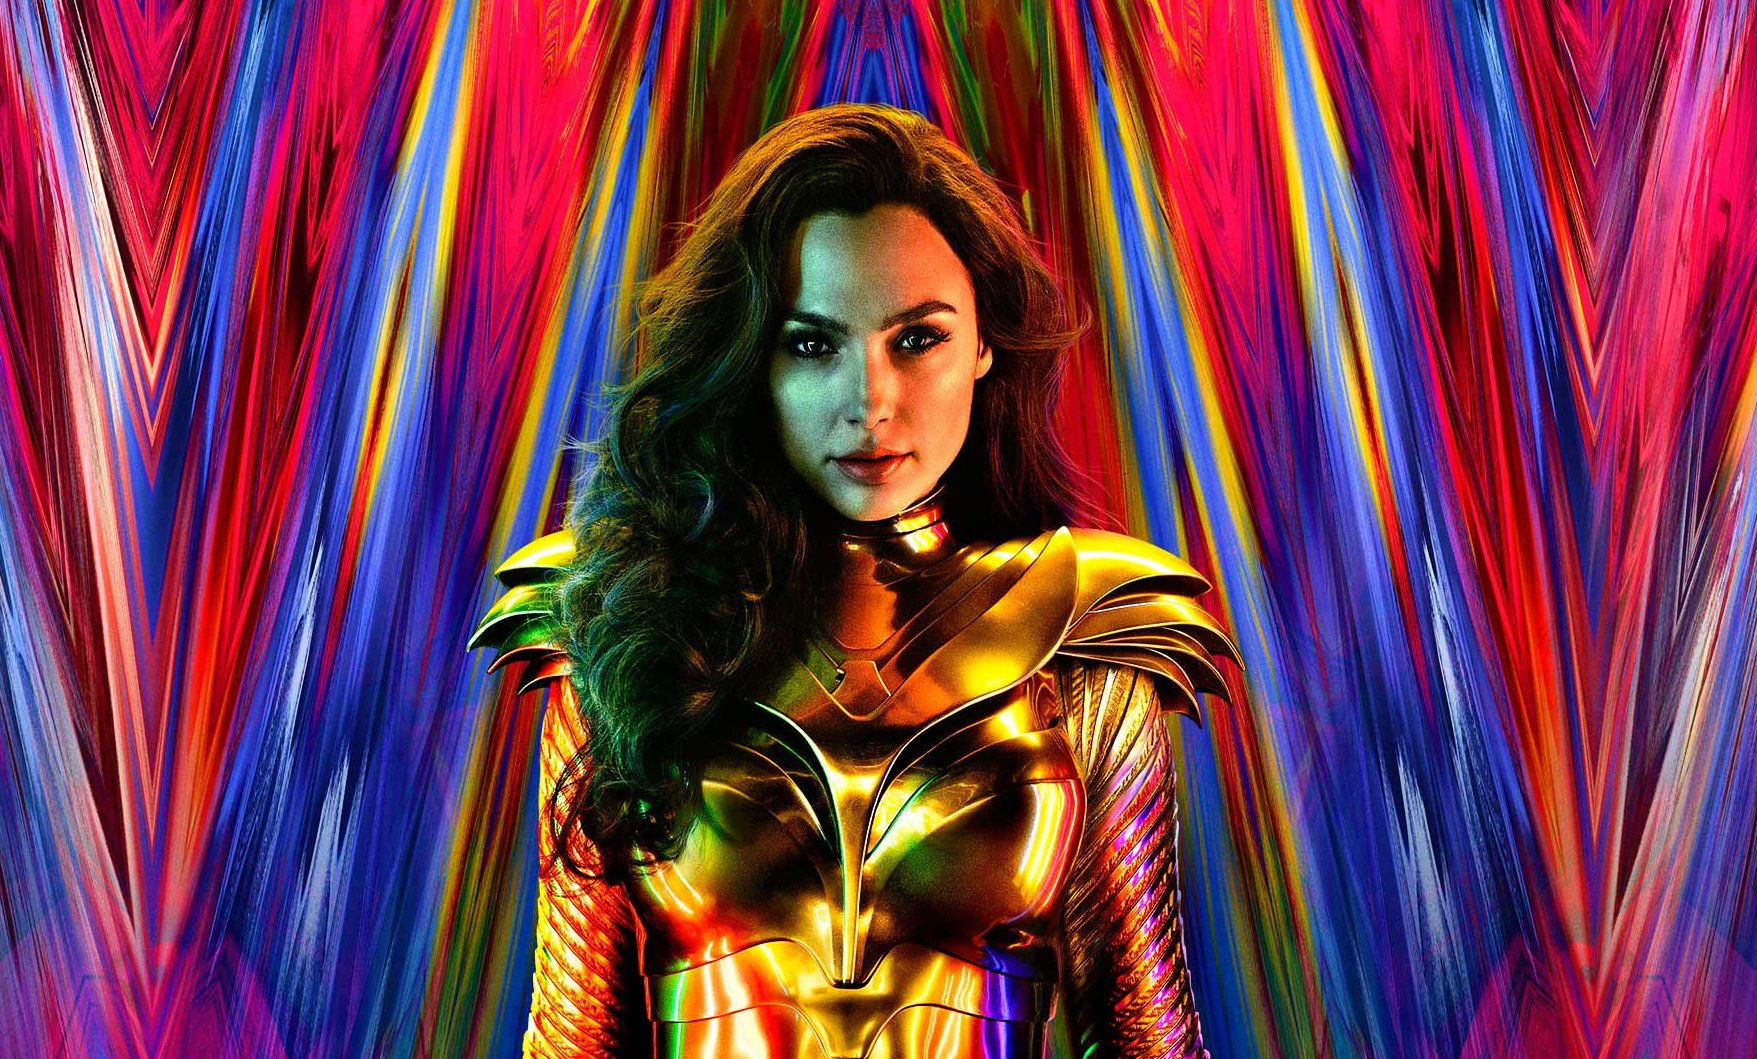 Wonder Woman 1984 Poster Shows Off Gal Gadot's New Gold Costume